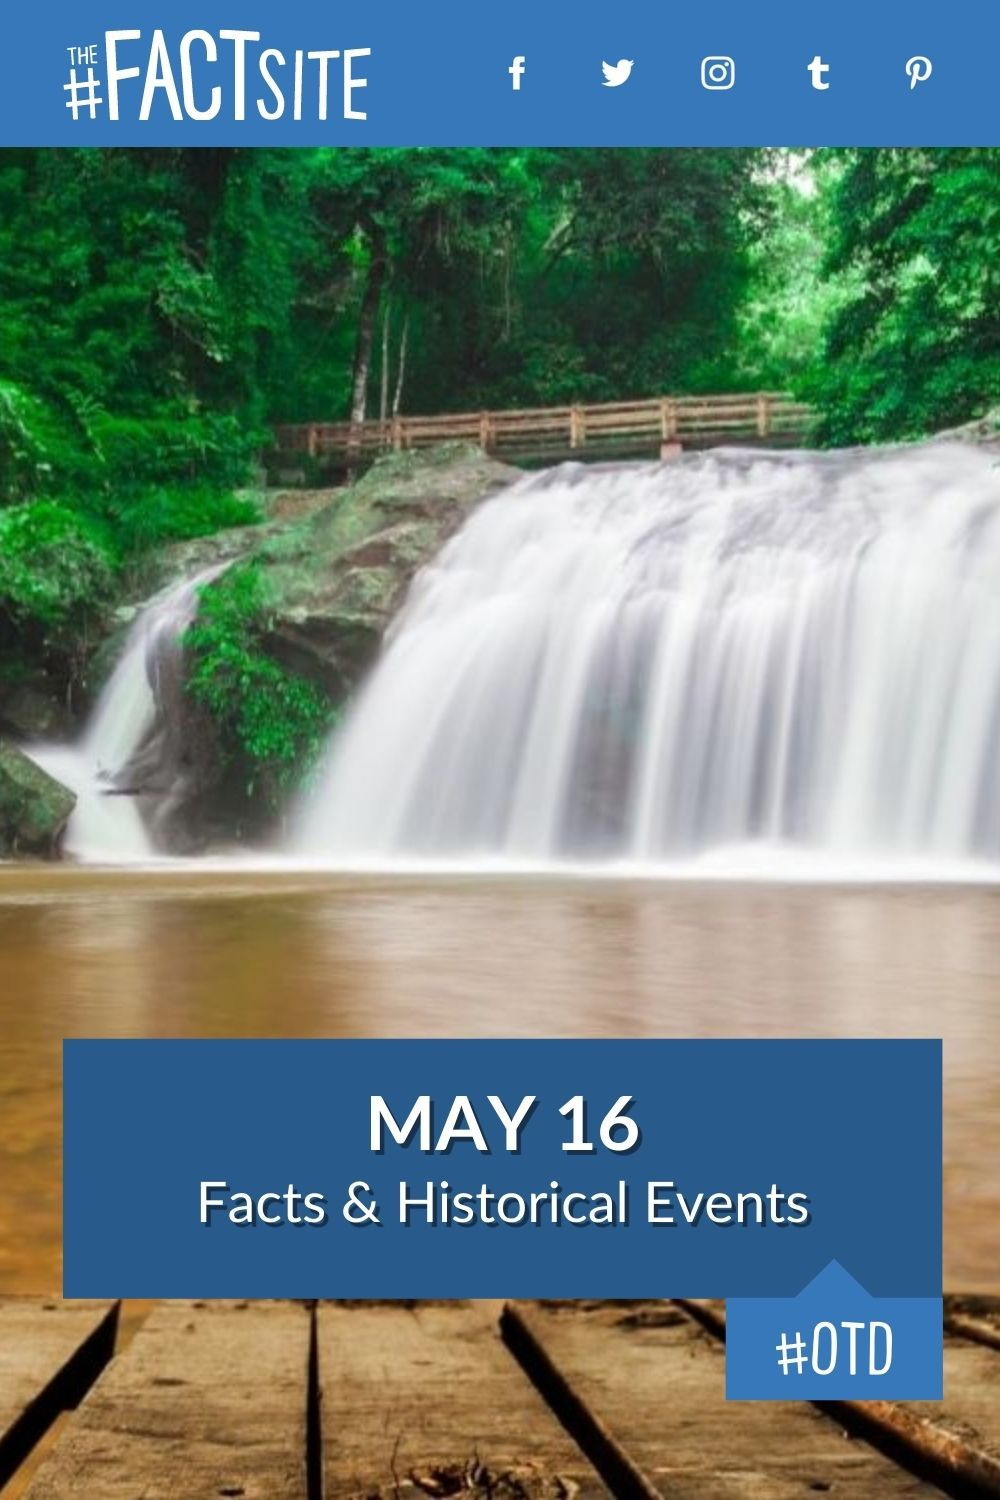 Facts & Historic Events That Happened on May 16